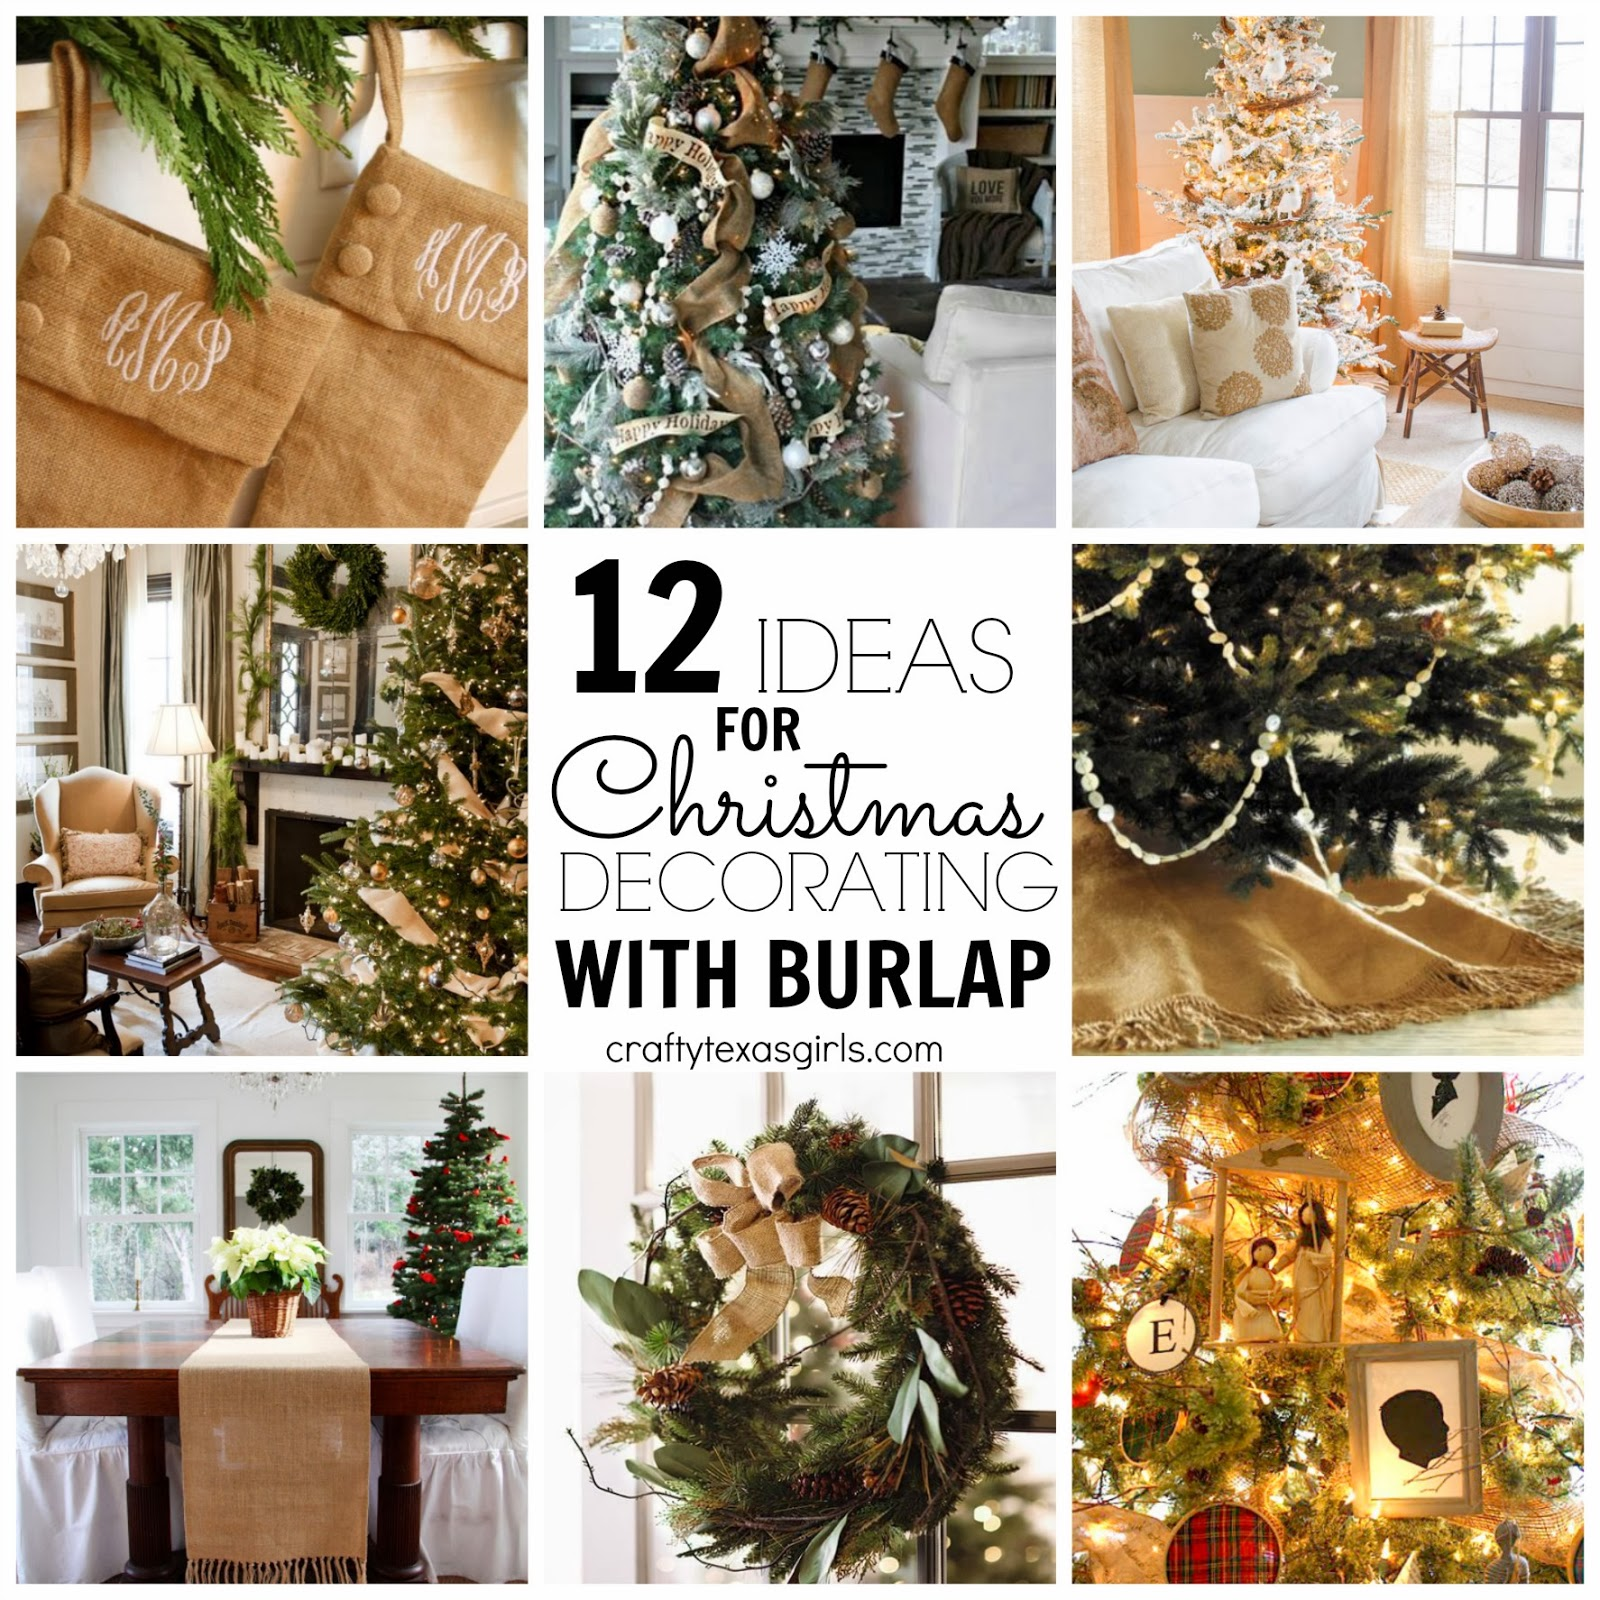 Add Burlap To Your Christmas